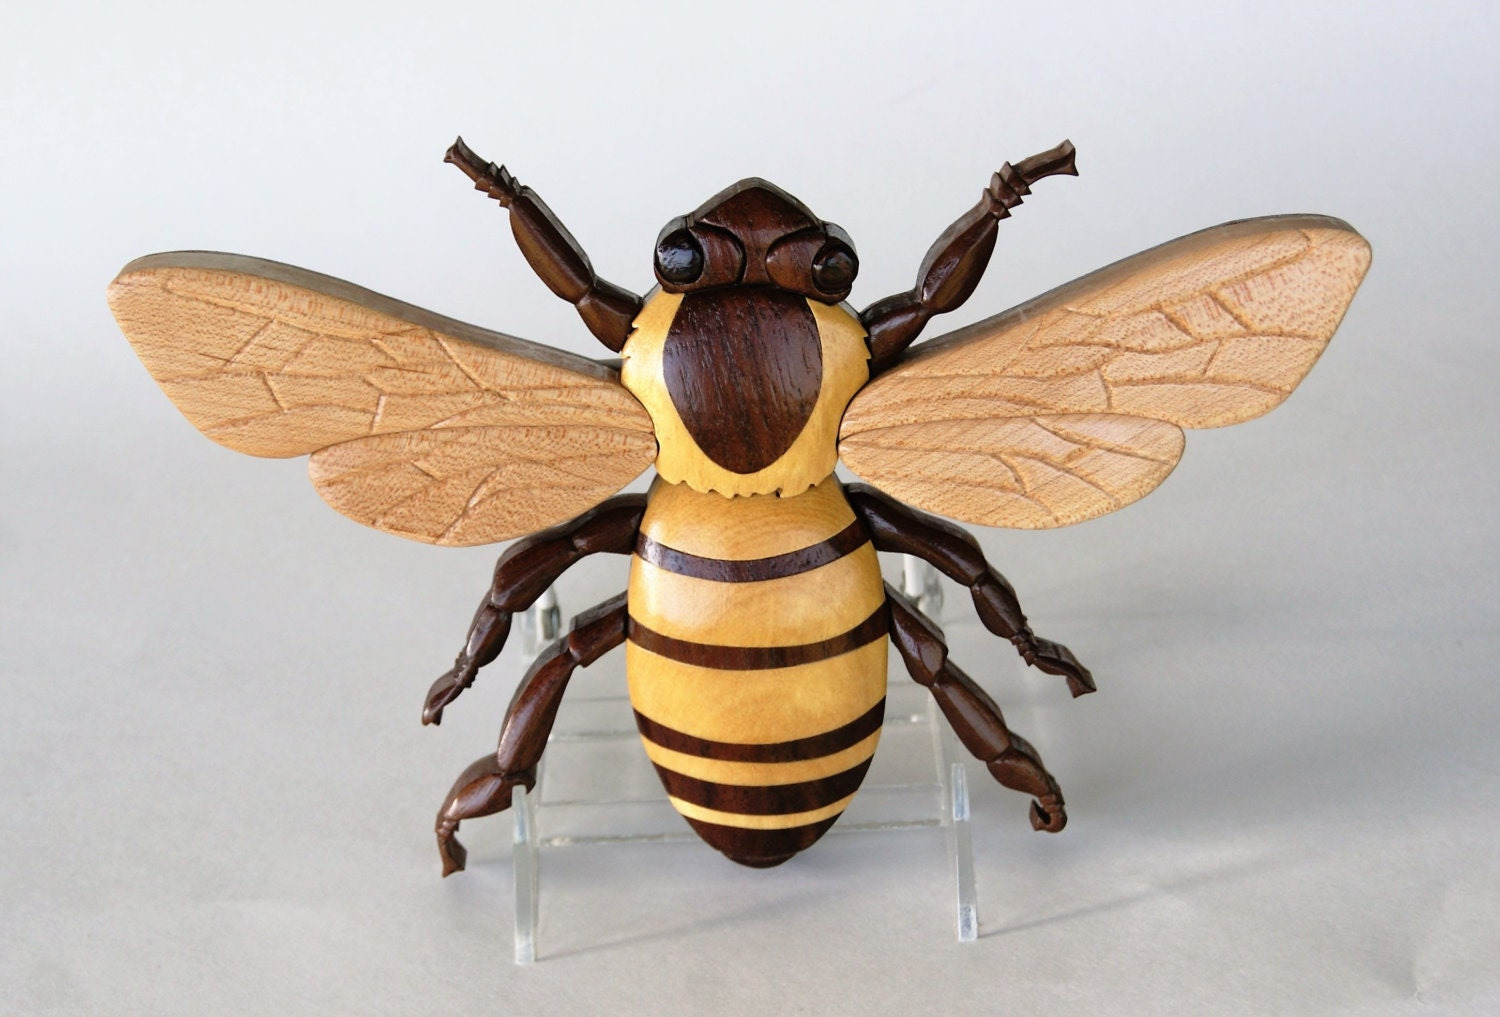 Honey Bee Intarsia Wall Hanging Insect Wood Carving Bumble